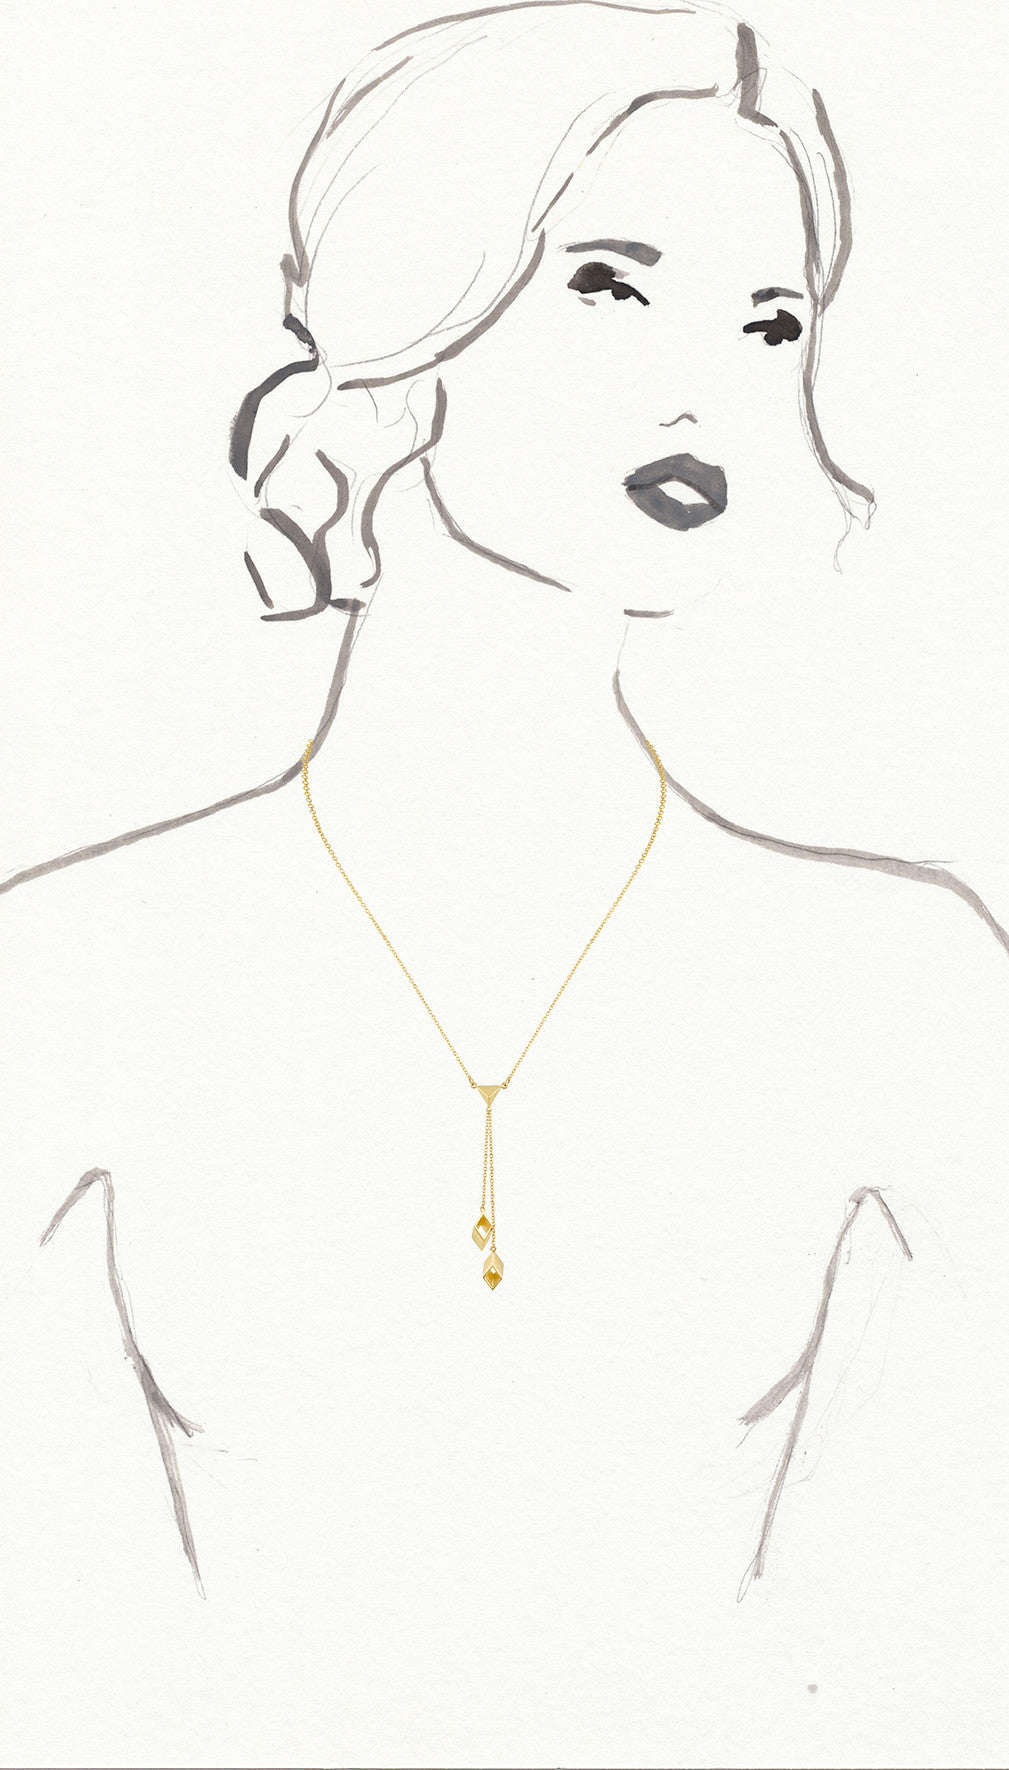 Gold Diamond Shape Lariat Necklace